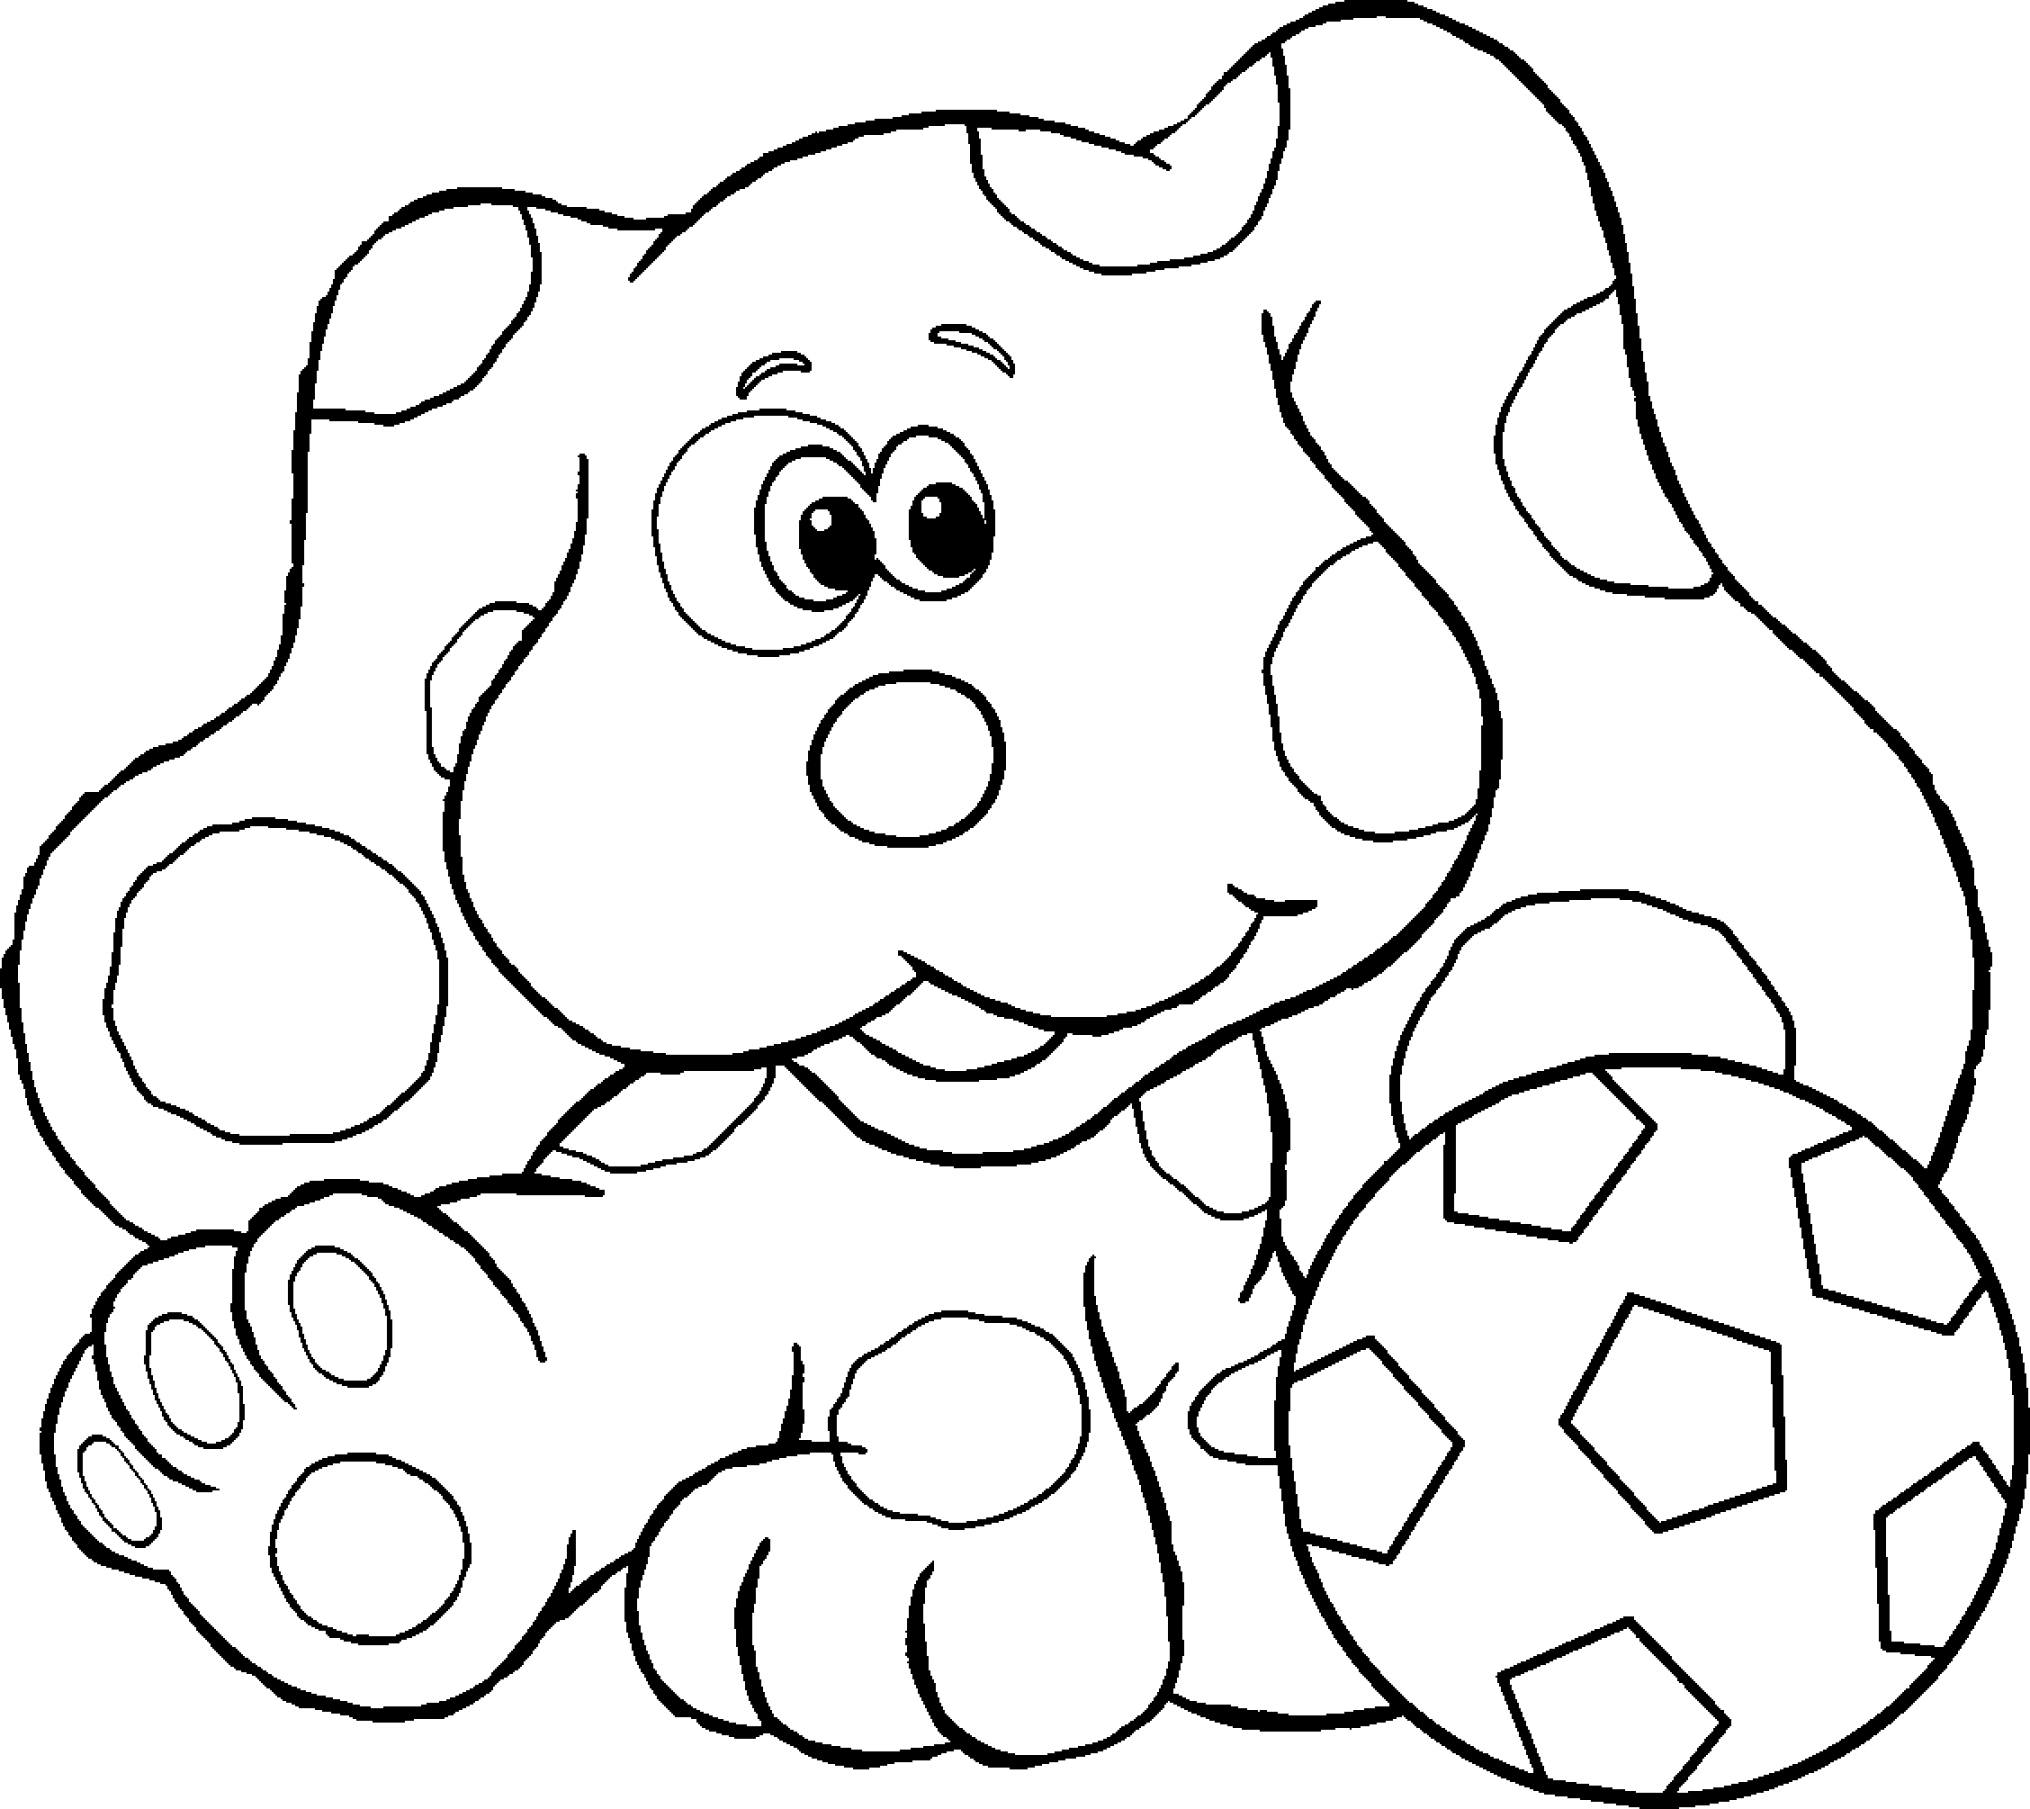 blues clues coloring pages free printable blues clues coloring pages for kids clues blues coloring pages